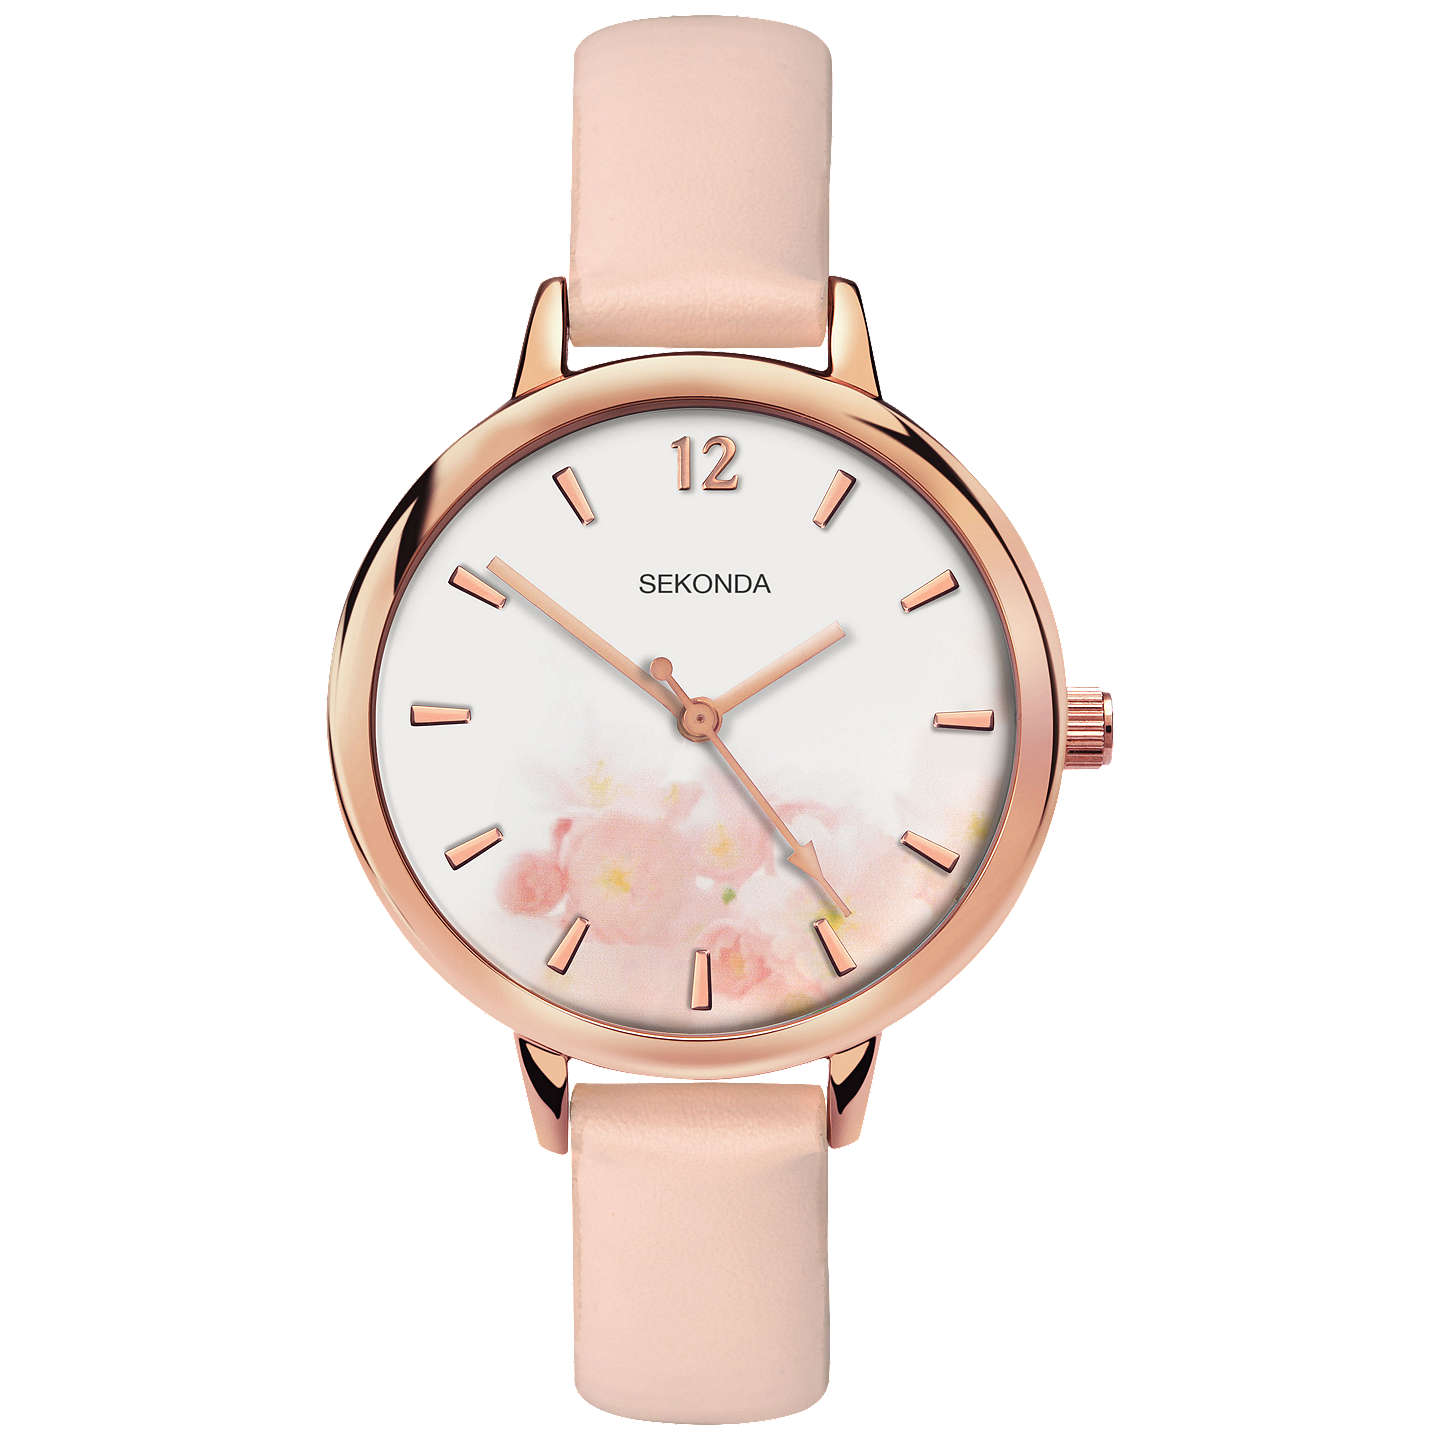 BuySekonda 2624.27 Women's Floral Faux Leather Strap Watch, Pale Pink/White Online at johnlewis.com